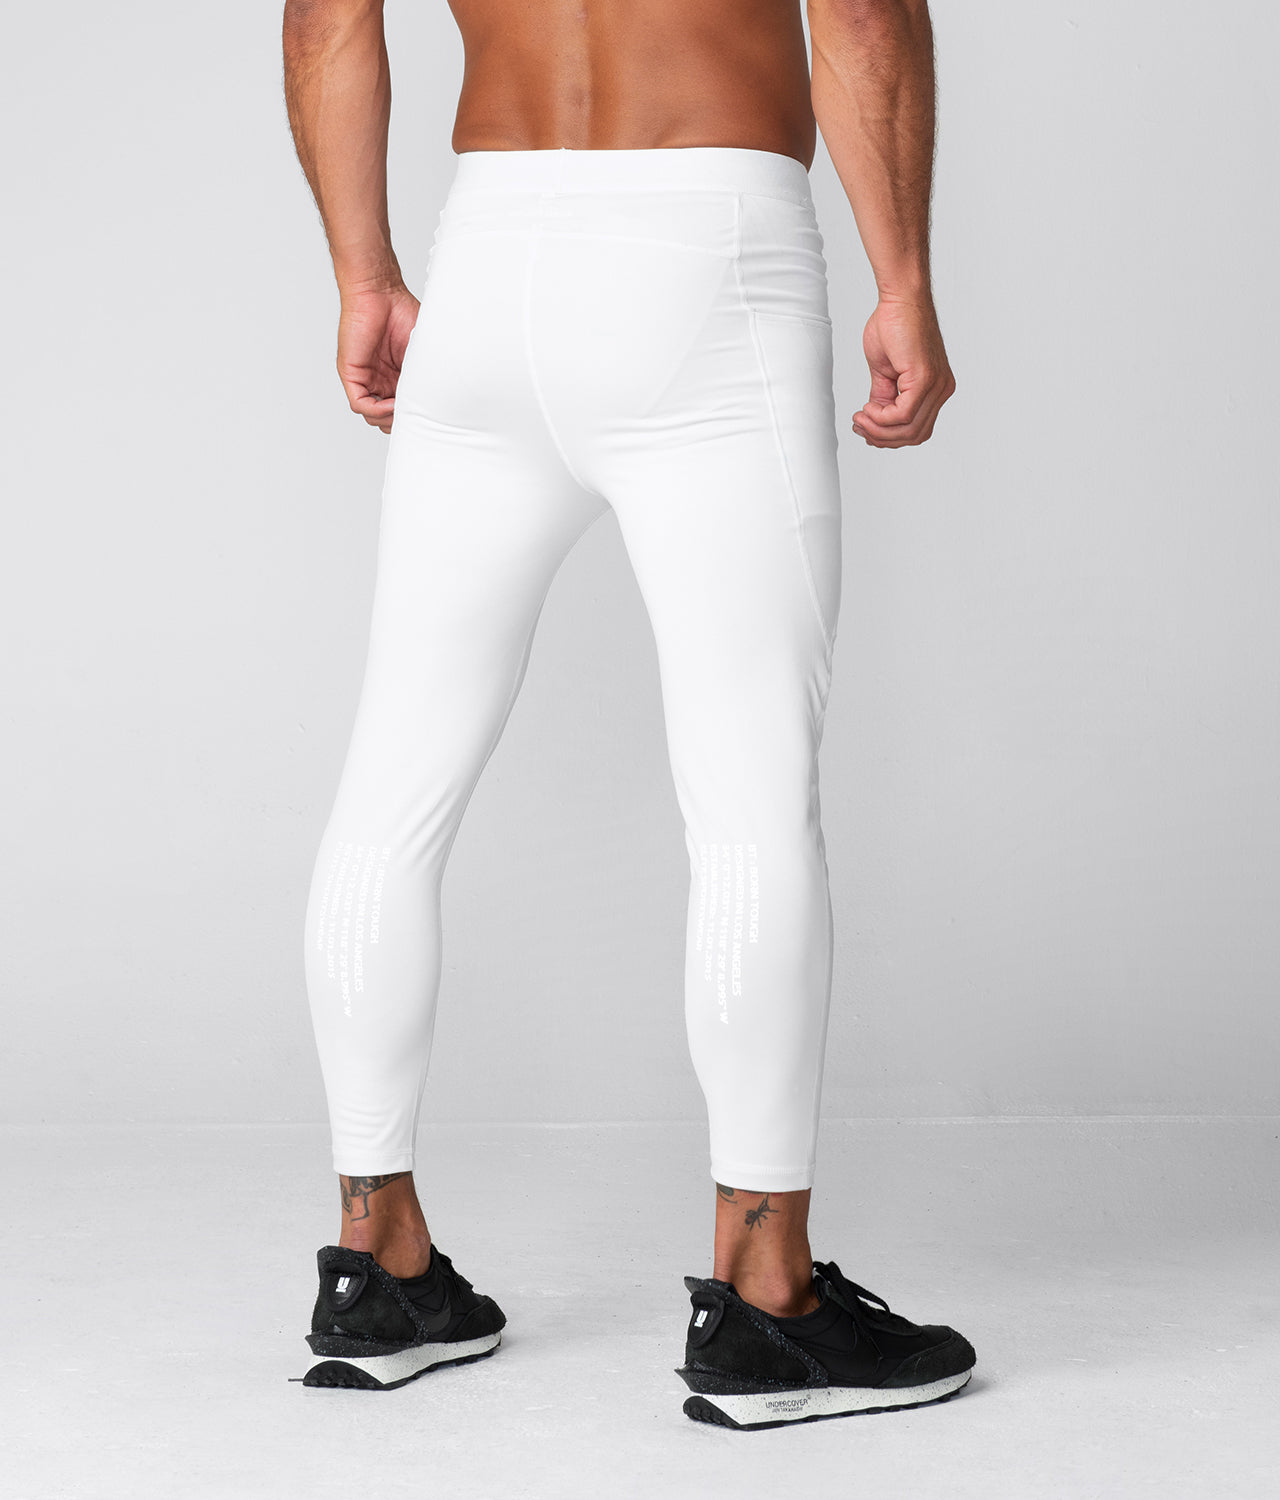 Born Tough Side Pockets Compression Maximum Performance Gym Workout Pants For Men White